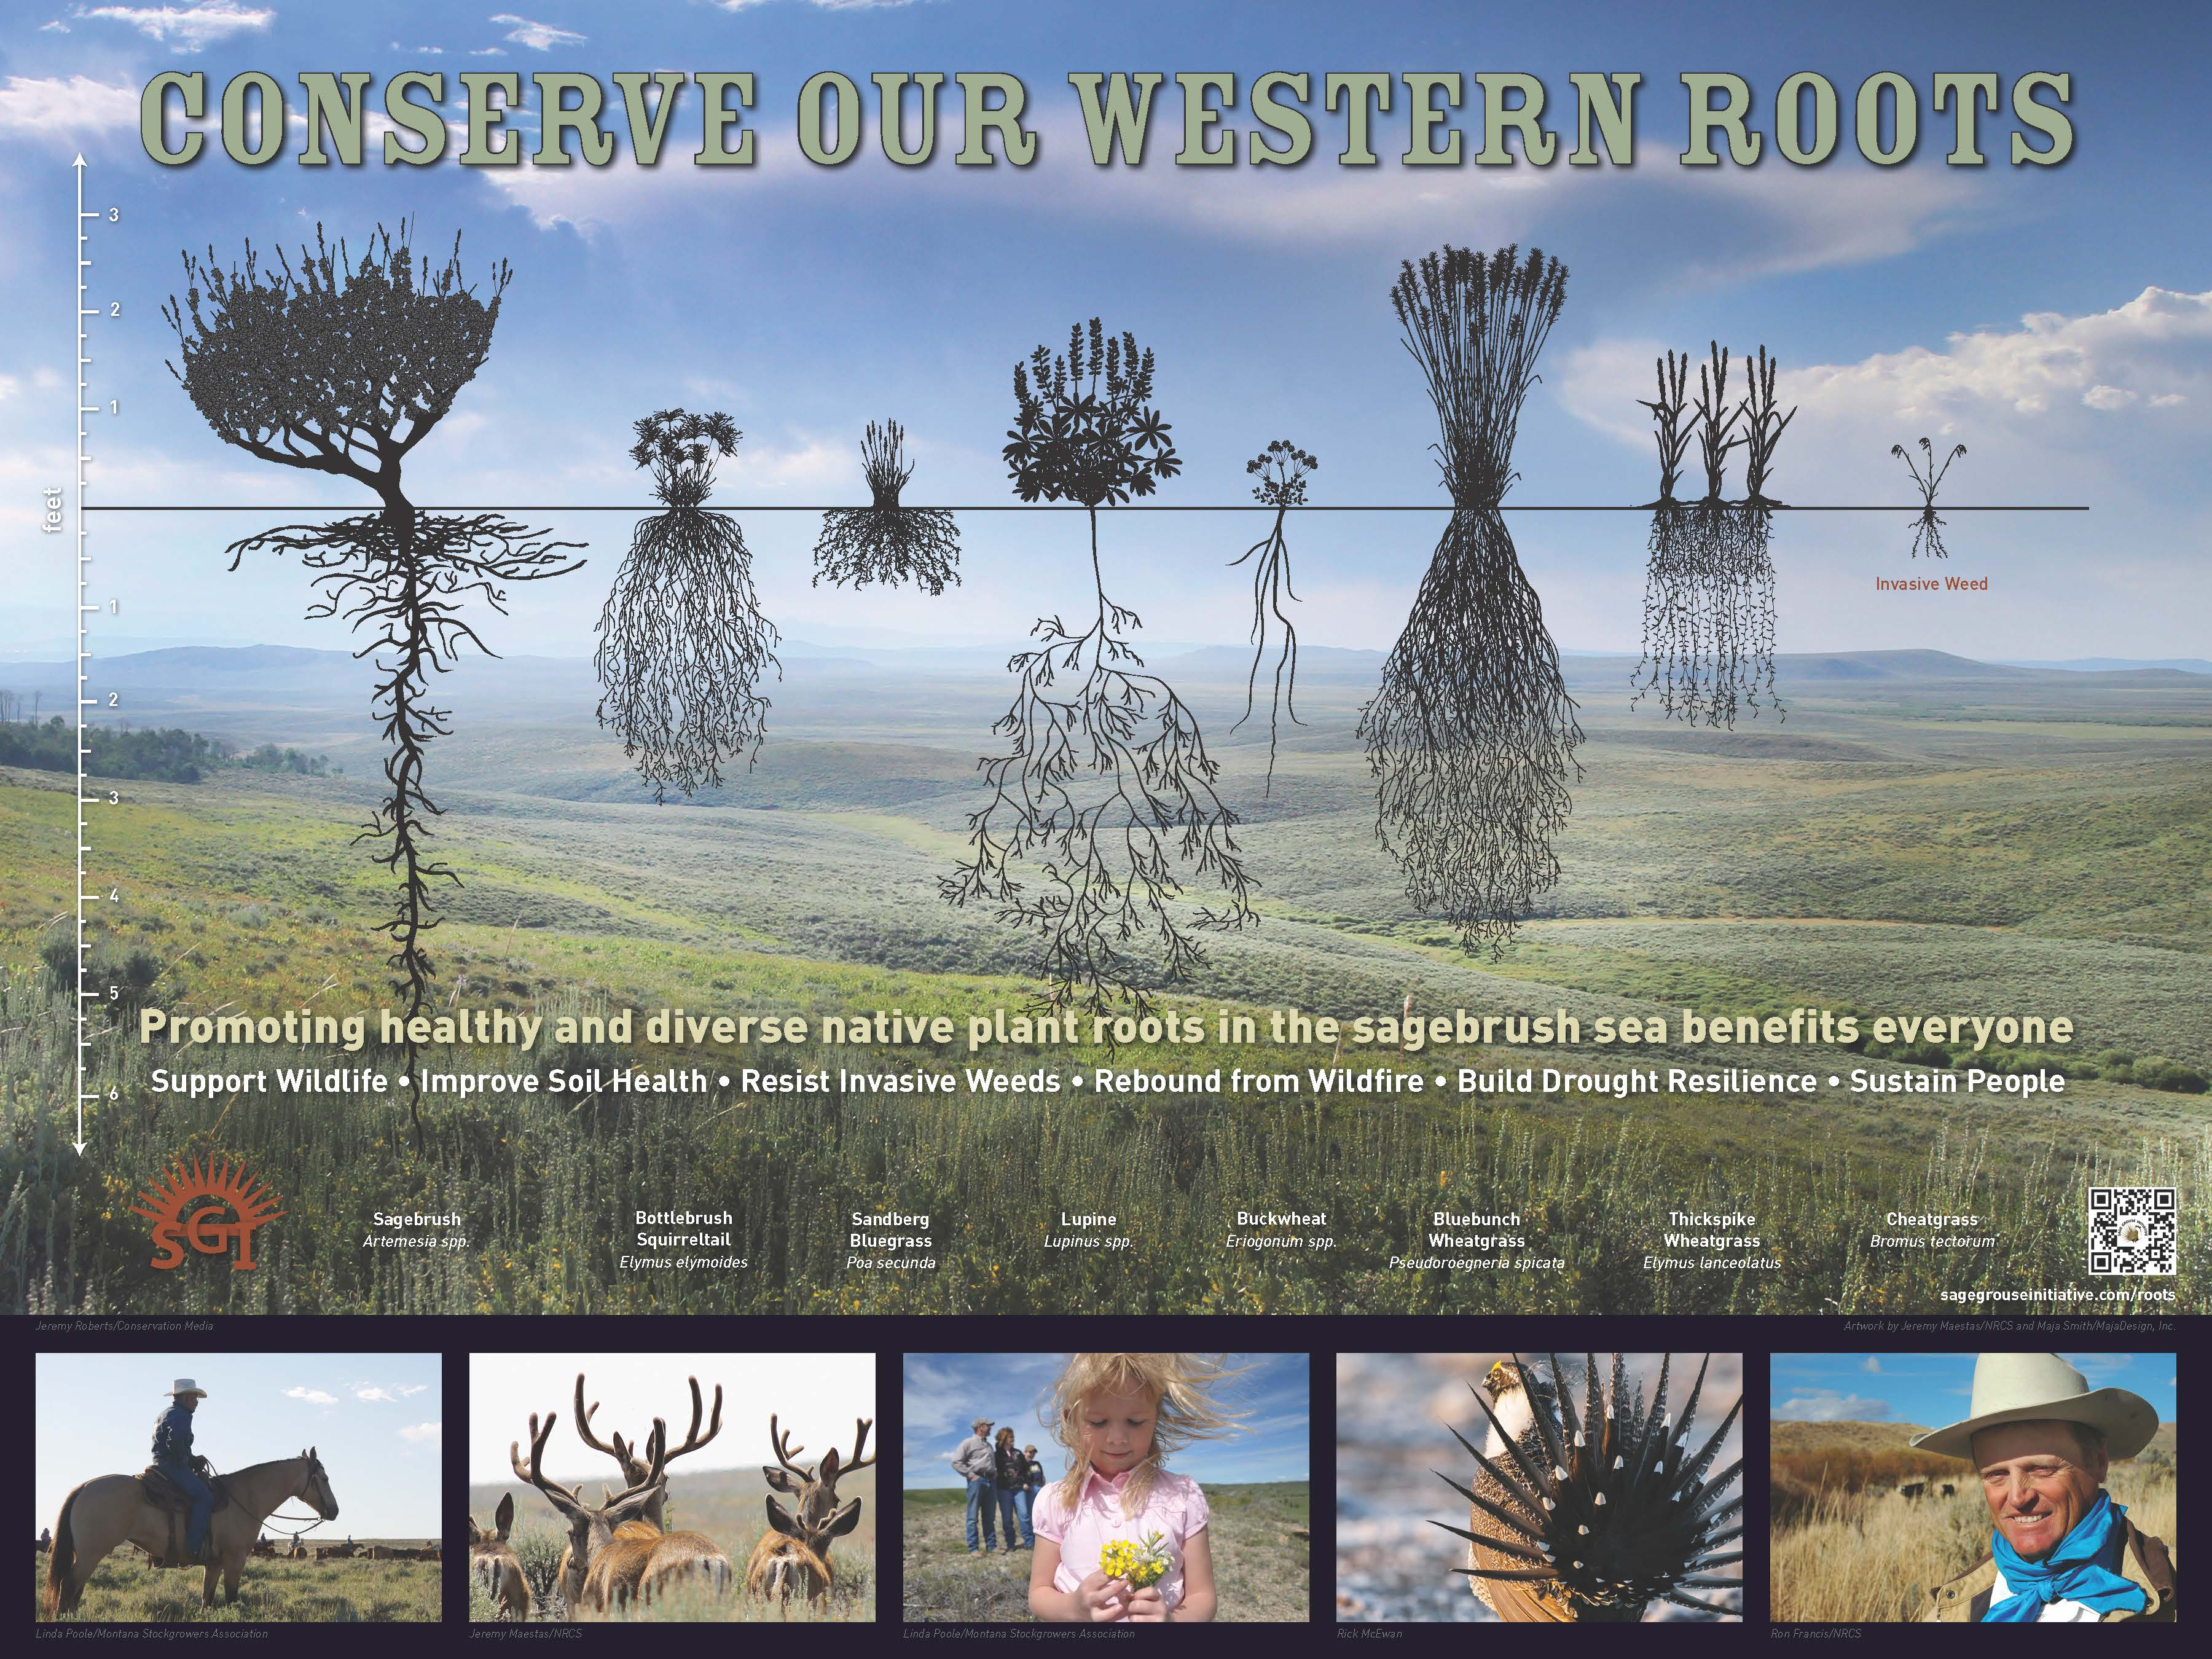 SGI-Conserve Our Western Roots poster